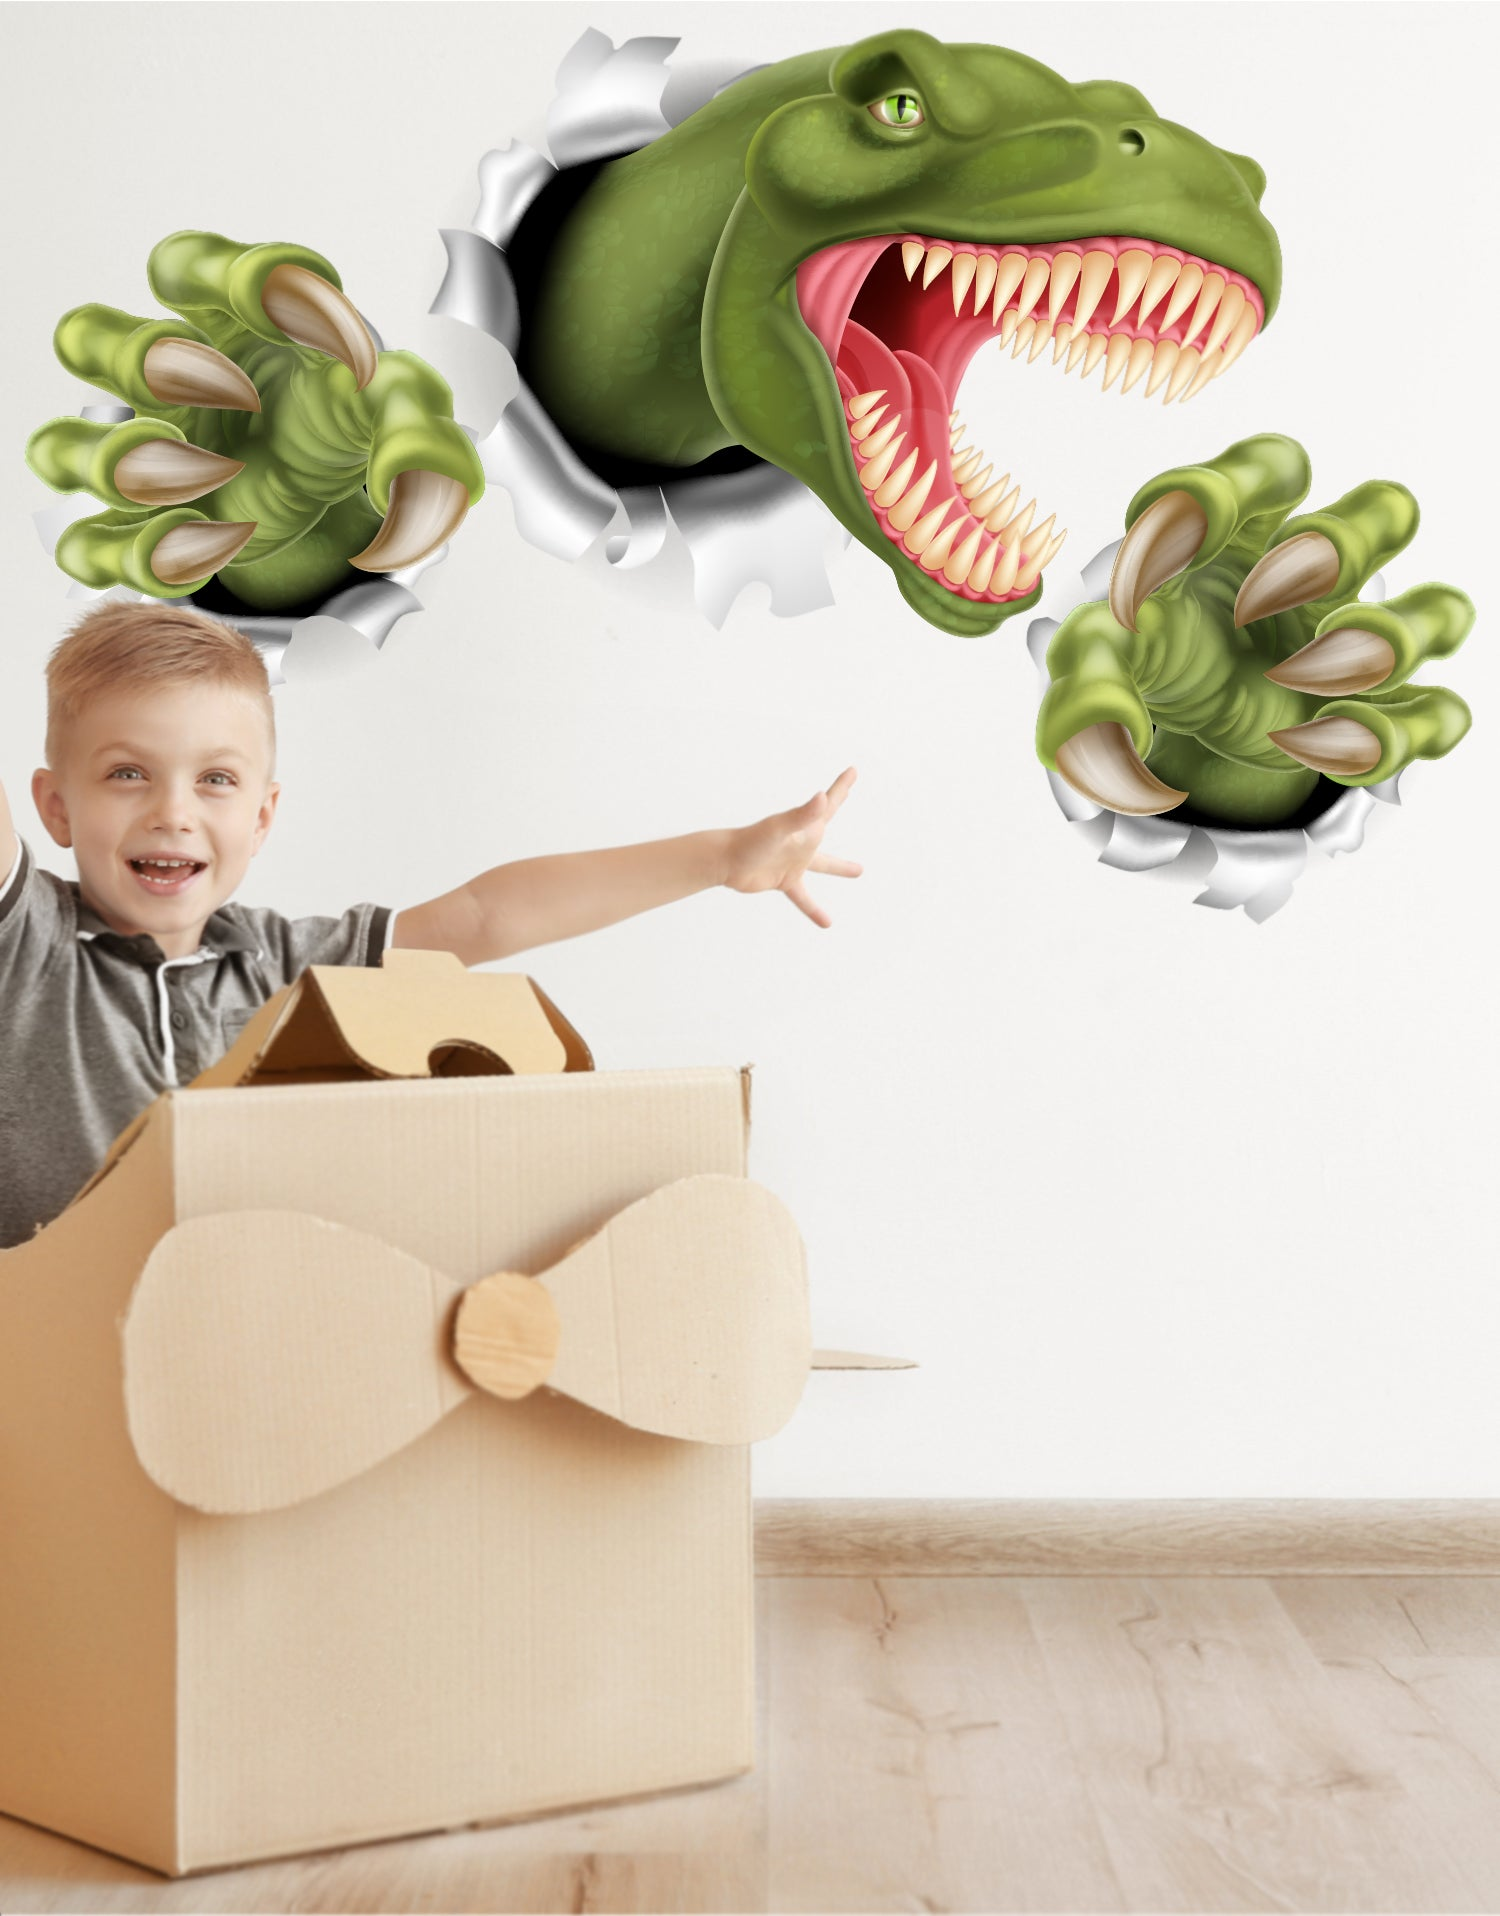 T-Rex Dinosaur Jumping out of wall. 3D Graphic Wall Decal Sticker. Peel and Stick. Removable and Reusable. #6115